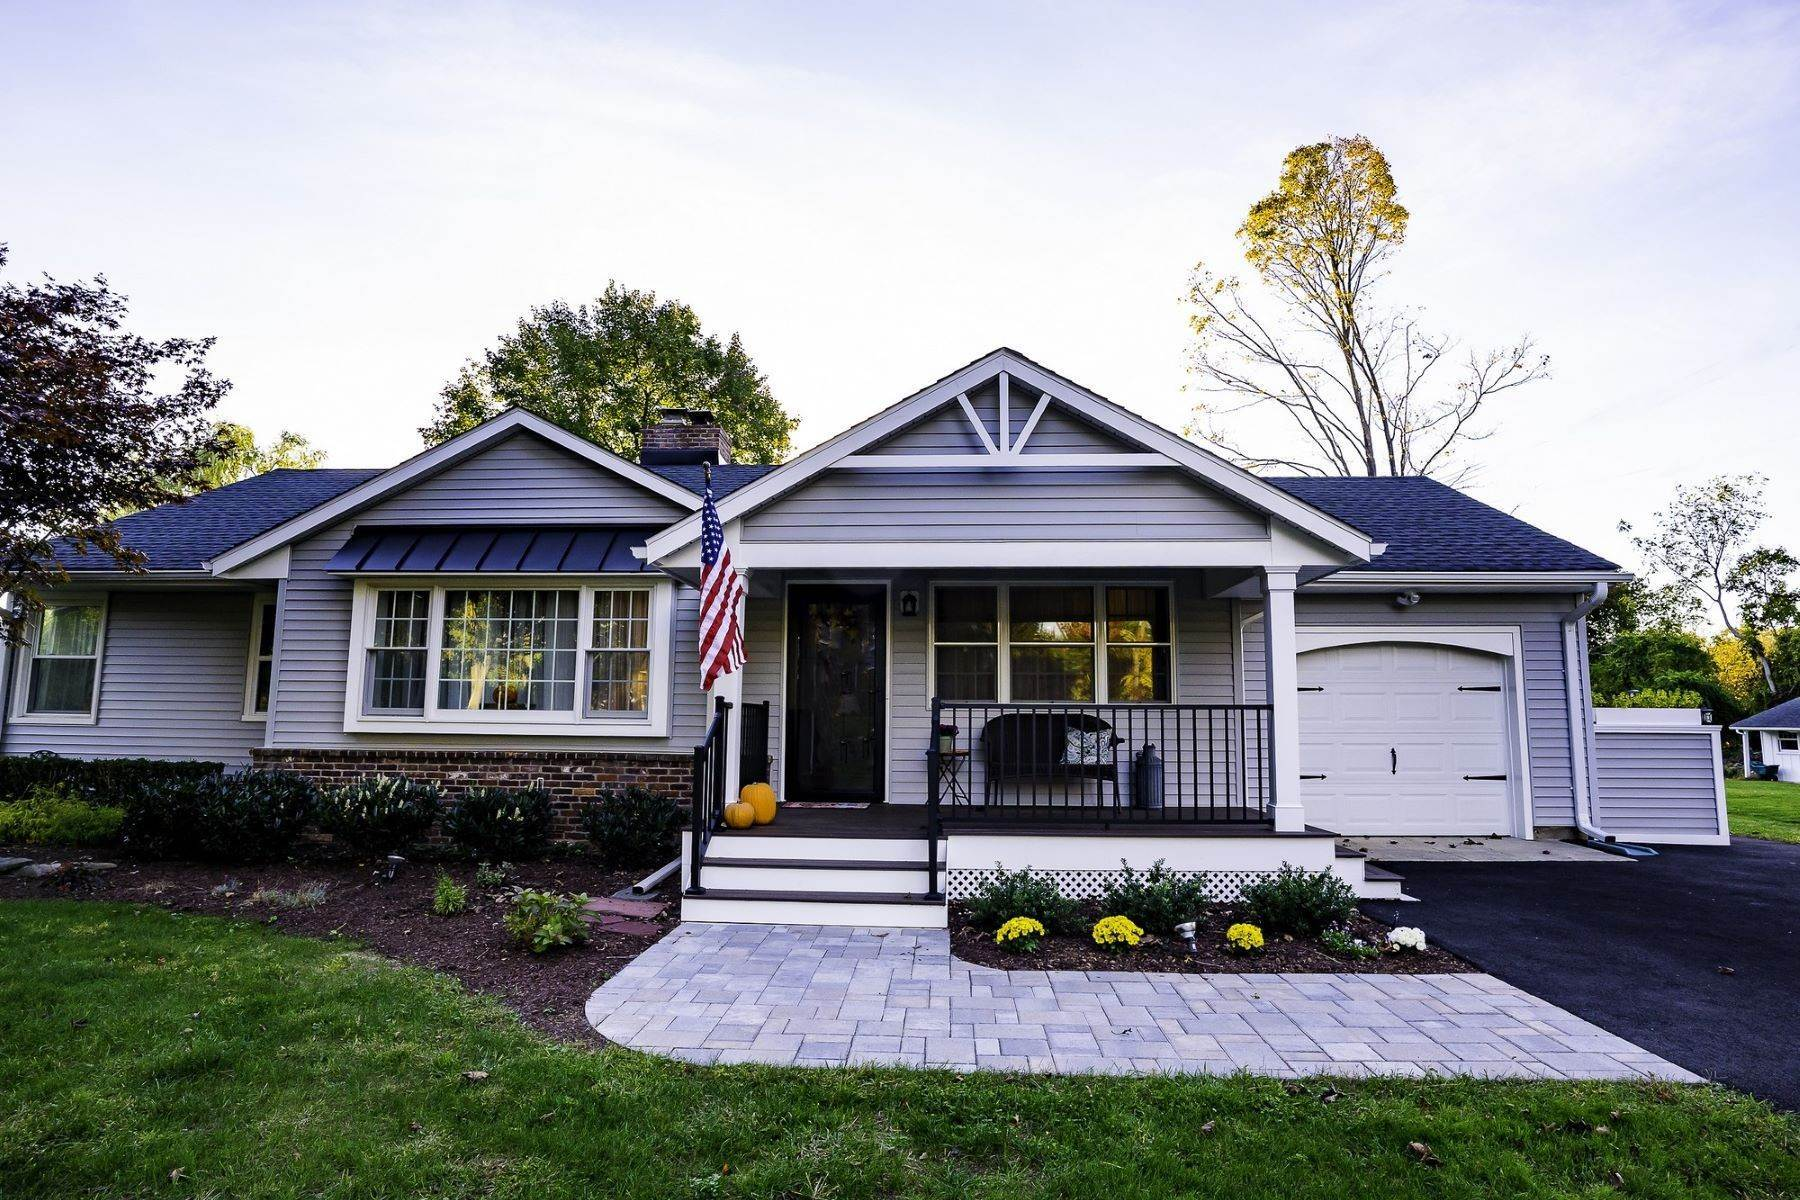 Single Family Homes for Sale at Charming Renovated Ranch 15 Rankin Avenue Basking Ridge, New Jersey 07920 United States